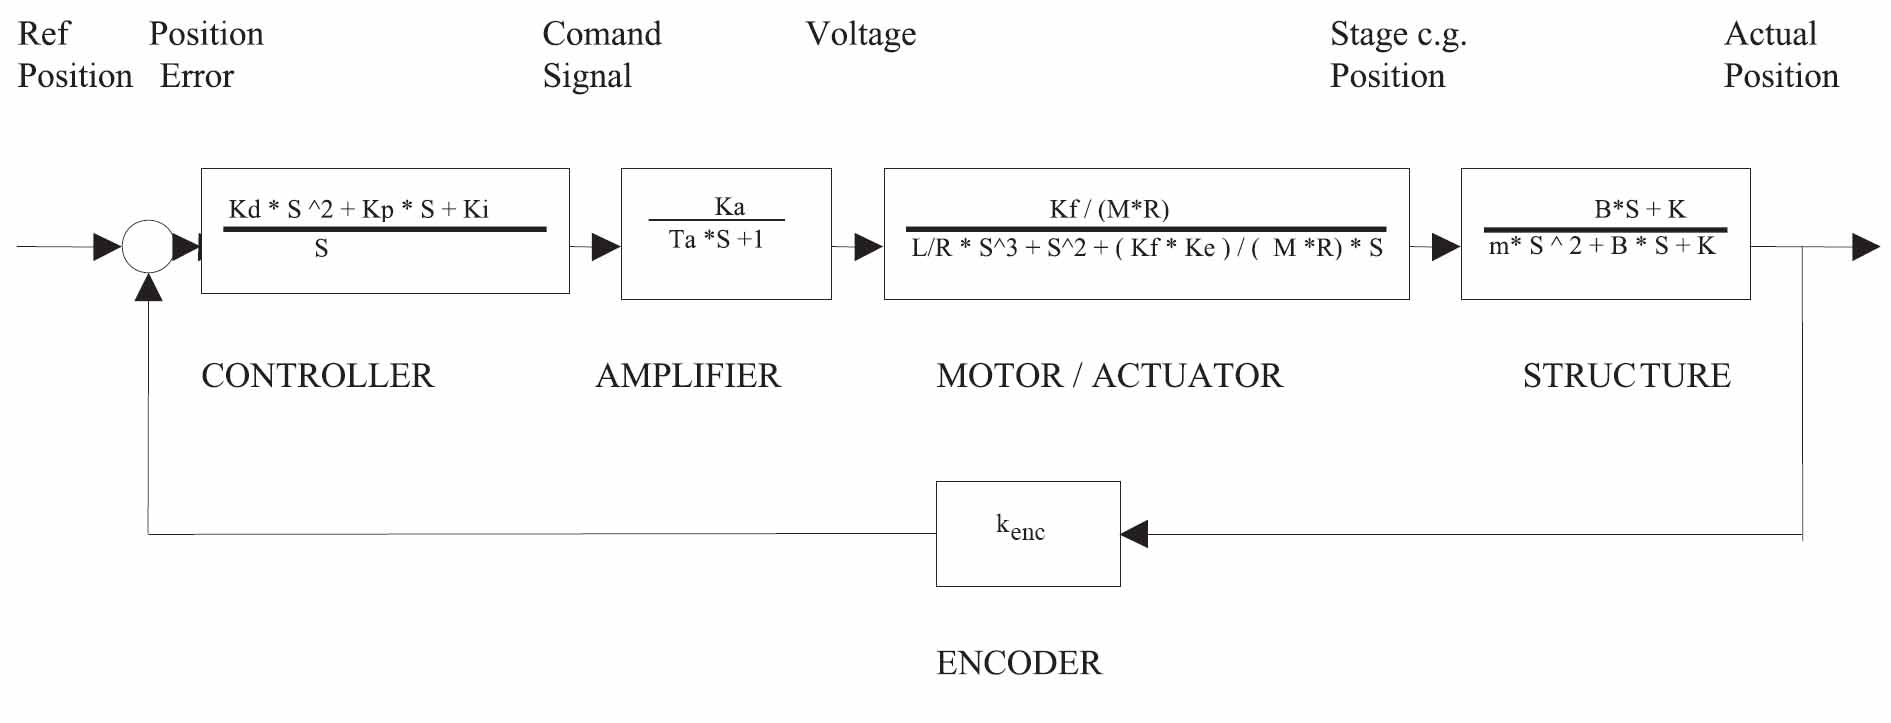 Motion Control Systems A Complete Family Of System 101 Speed Brushless Motor Ac Overview Block Diagram Transfer Functions See Section 42 For Parameter Definitions